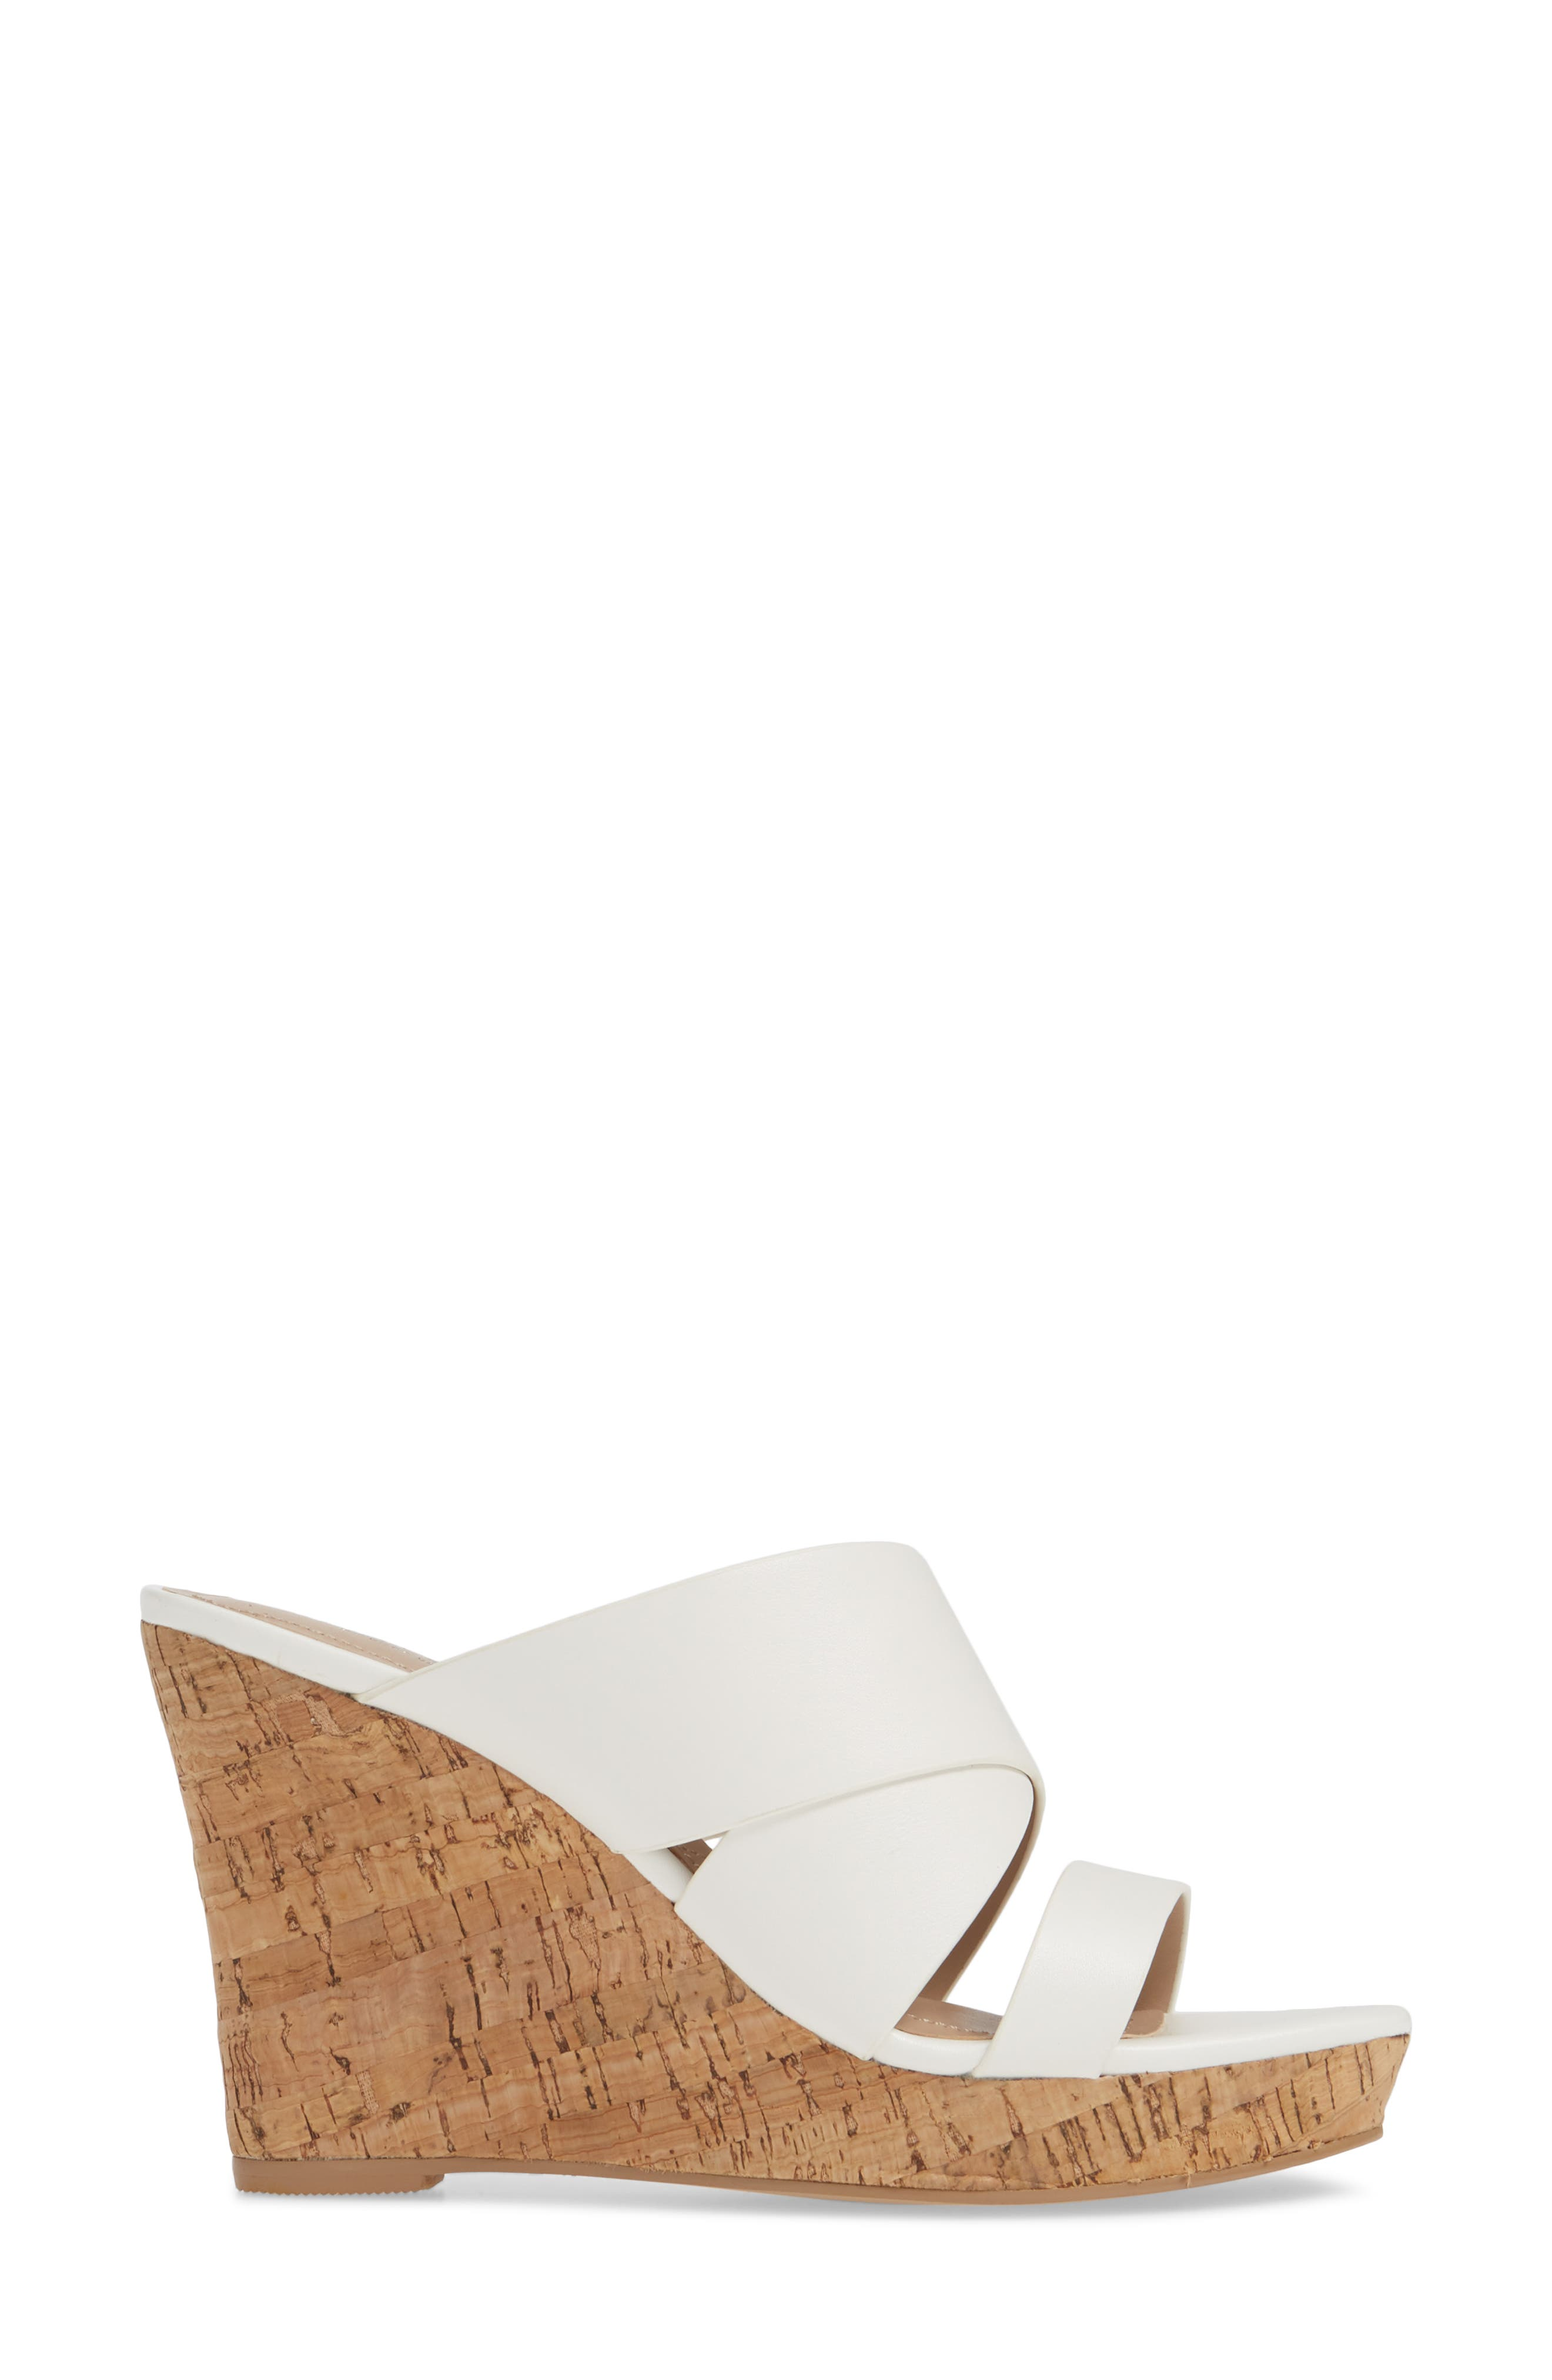 CHARLES BY CHARLES DAVID, Leslie Wedge Sandal, Alternate thumbnail 3, color, WHITE FAUX LEATHER